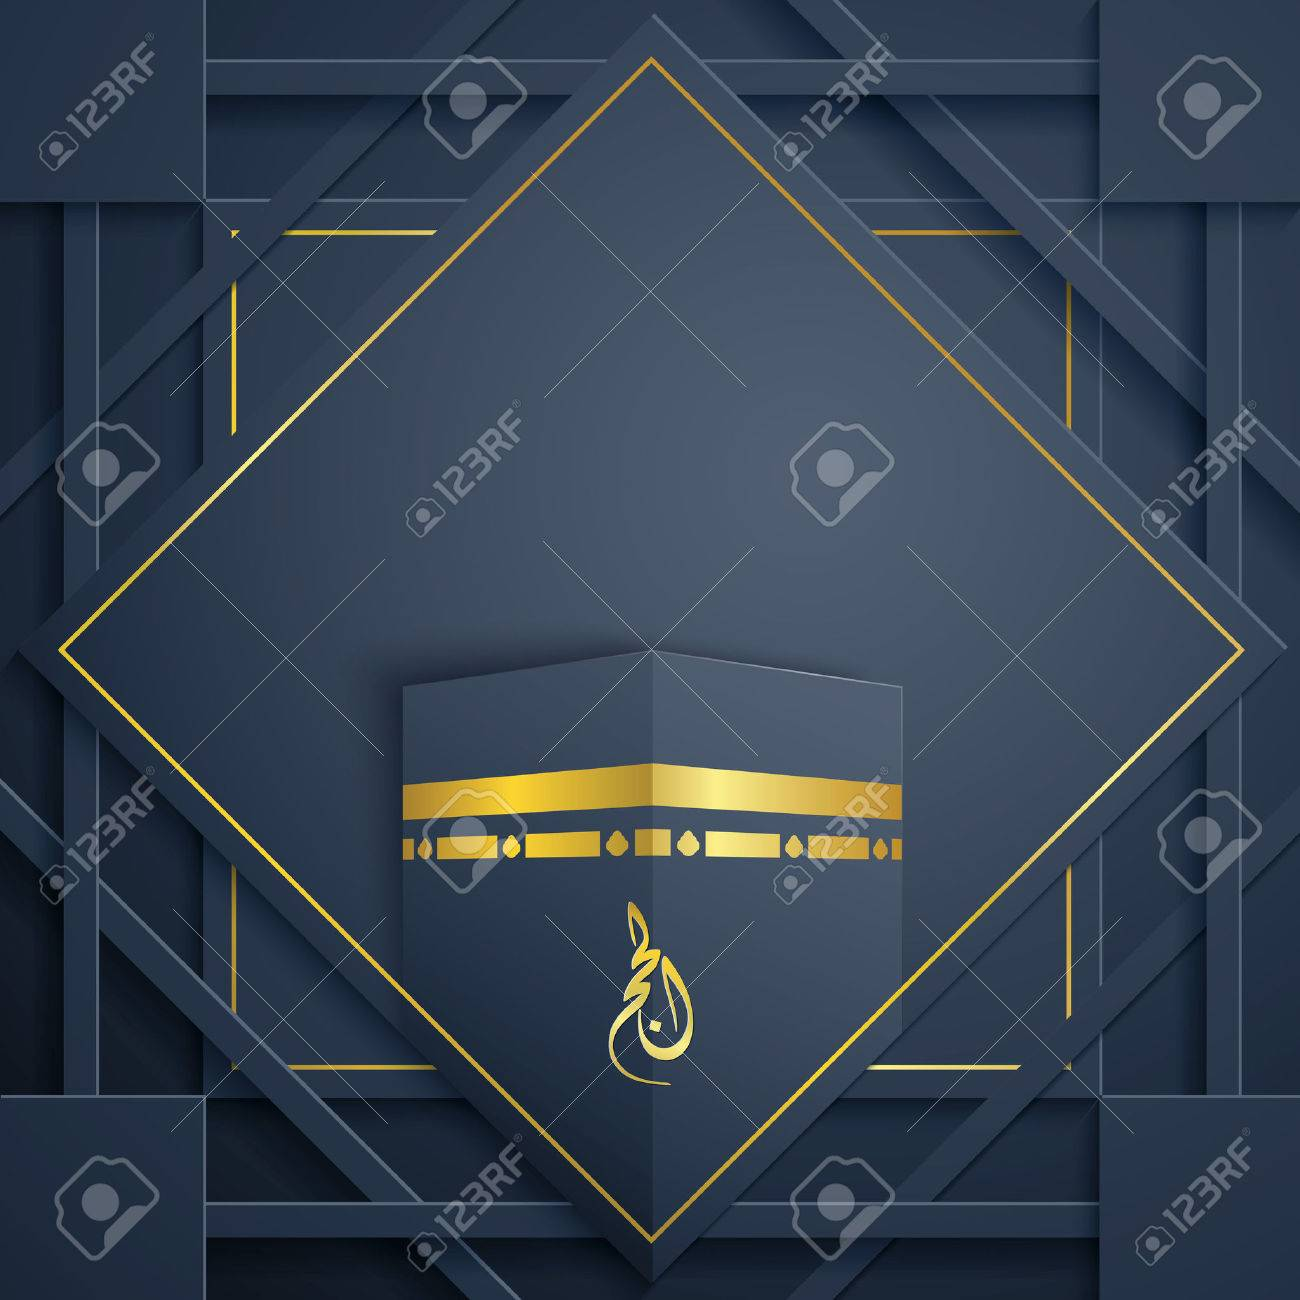 Islamic greeting card template for hajj pilgrimage with kaaba islamic greeting card template for hajj pilgrimage with kaaba and arabic pattern background stock kristyandbryce Image collections